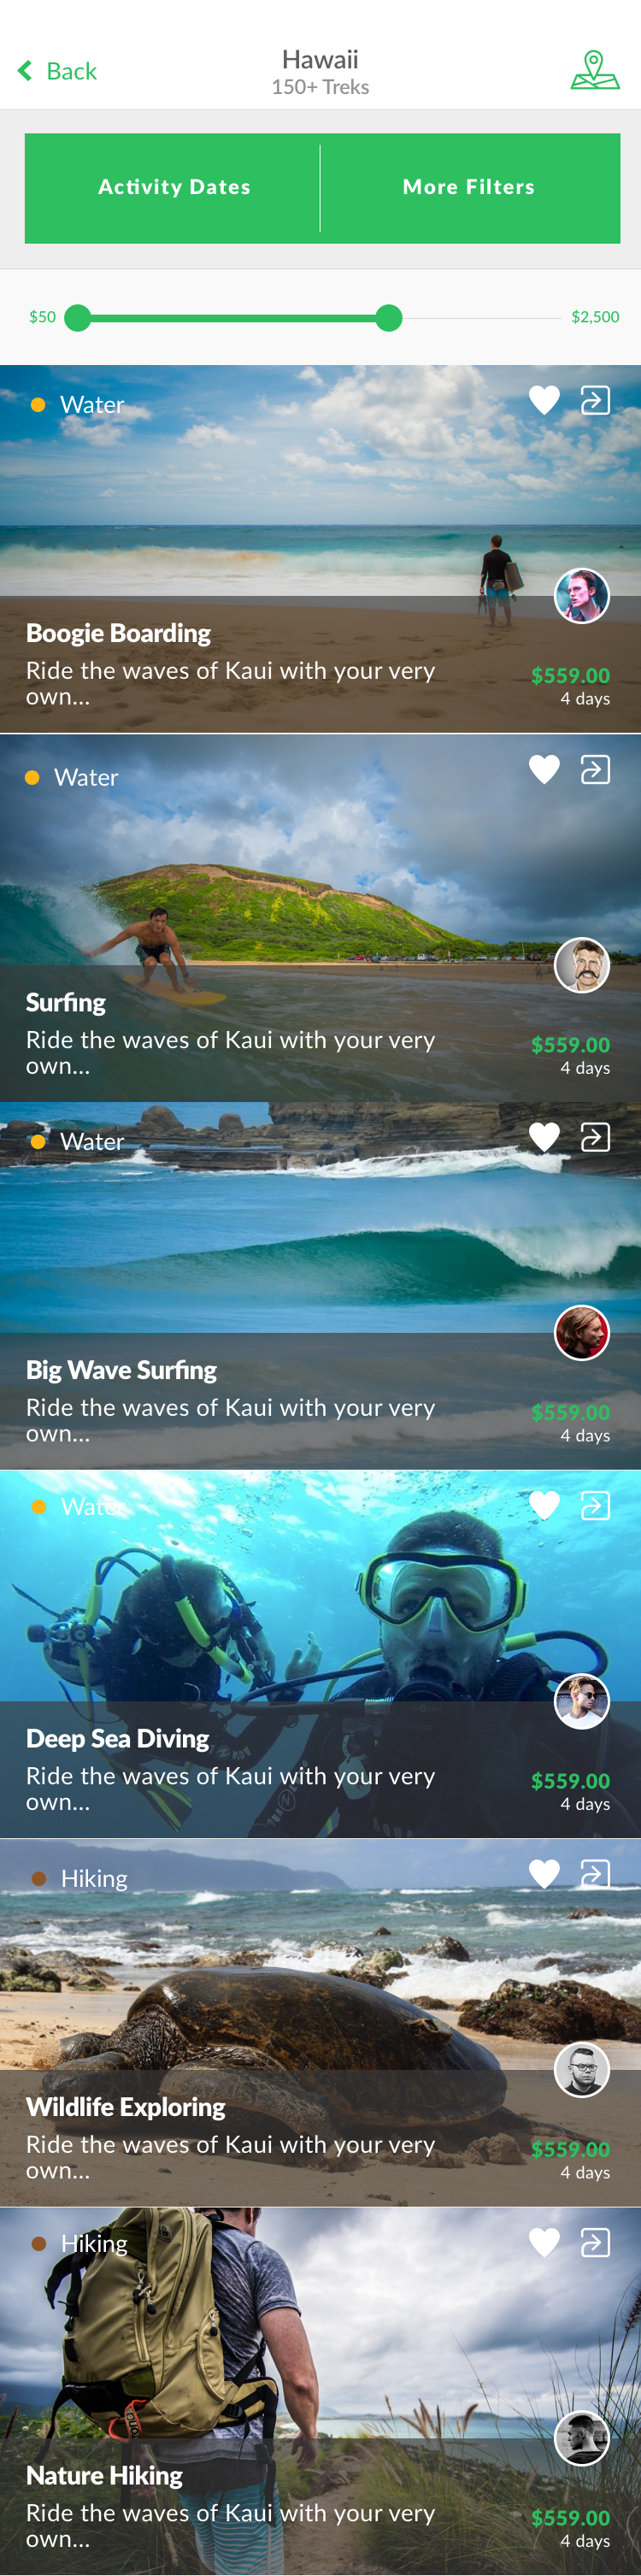 Search Results - Hawaii.png